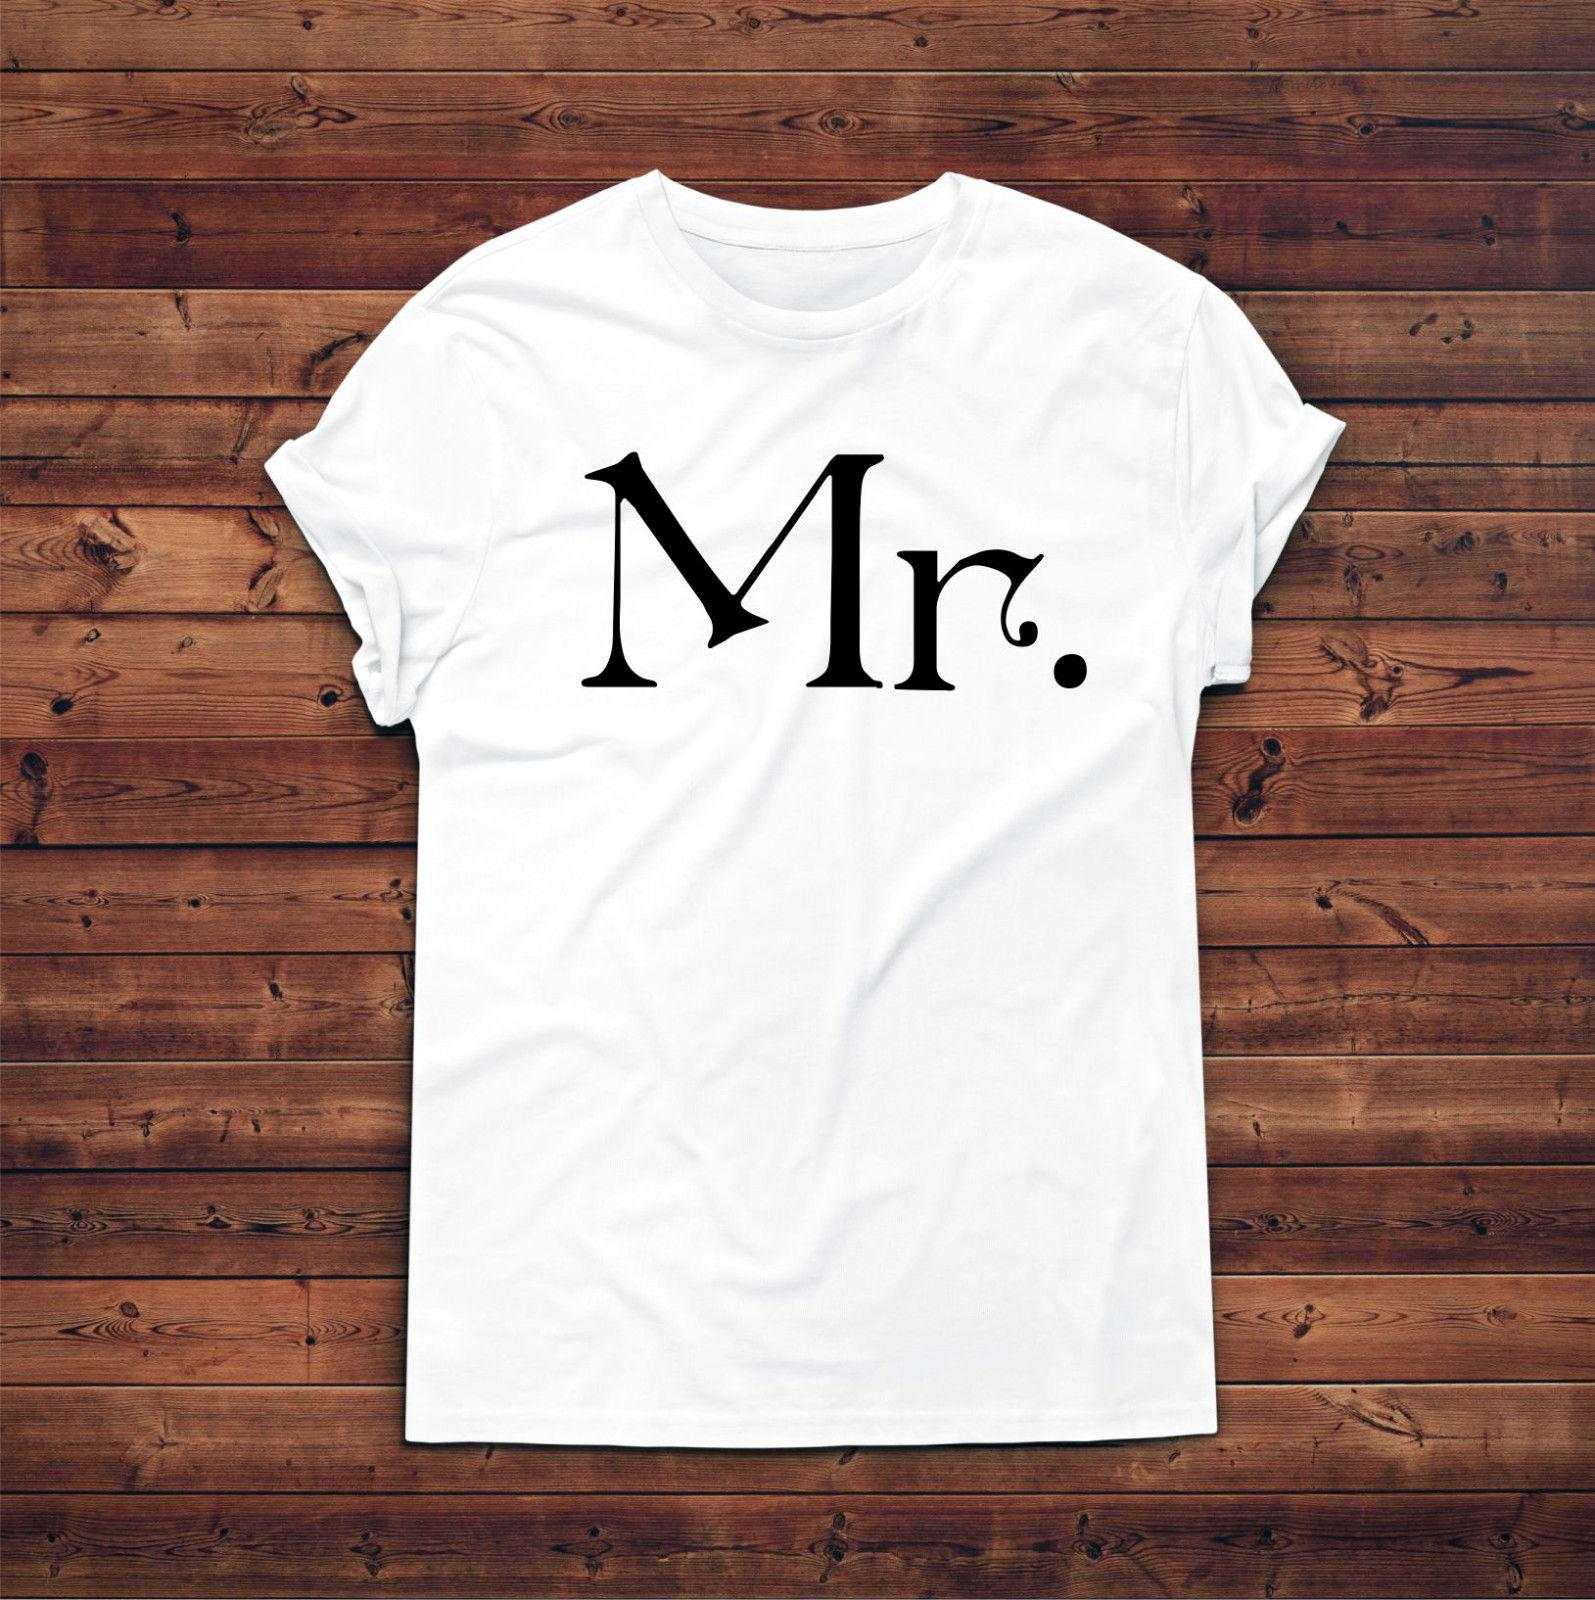 f03c50c2 Mr. T Shirt,Husband T Shirt,Wedding Gift, Groom Shirt,Bachelor Party, Stag  Party Casual Funny Unisex Tee Gift Shopping T Shirts Amusing T Shirts From  ...